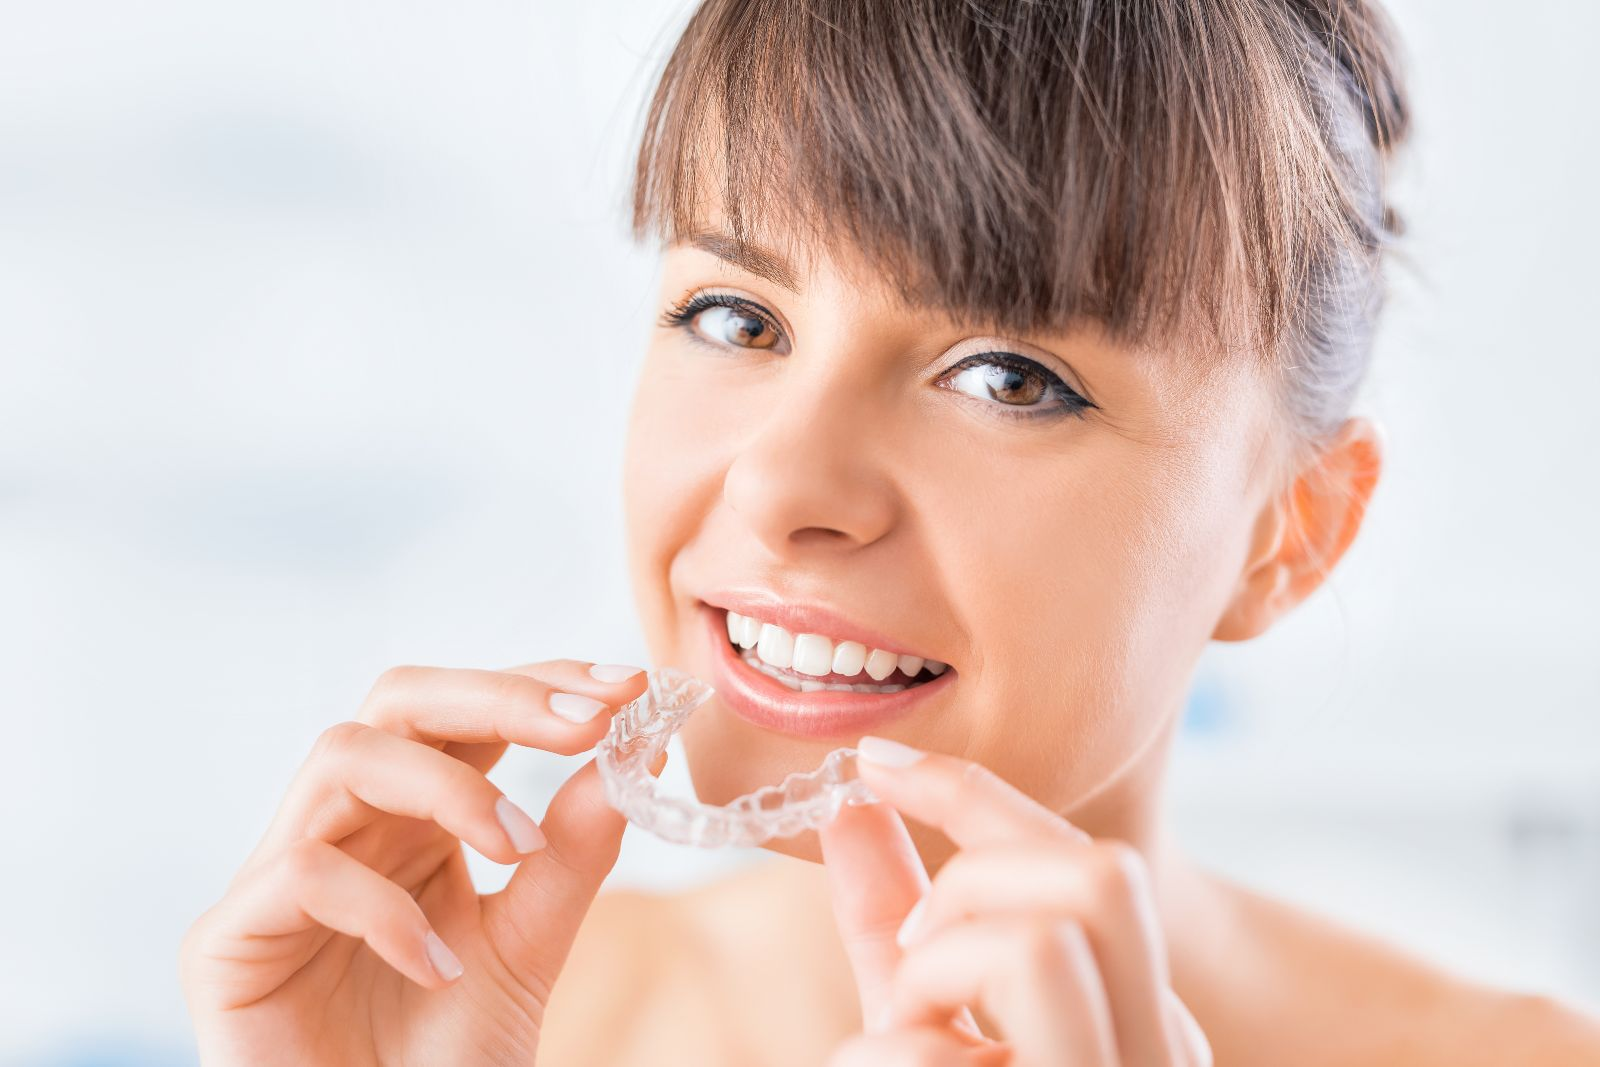 Beautiful smile and white teeth of a young woman